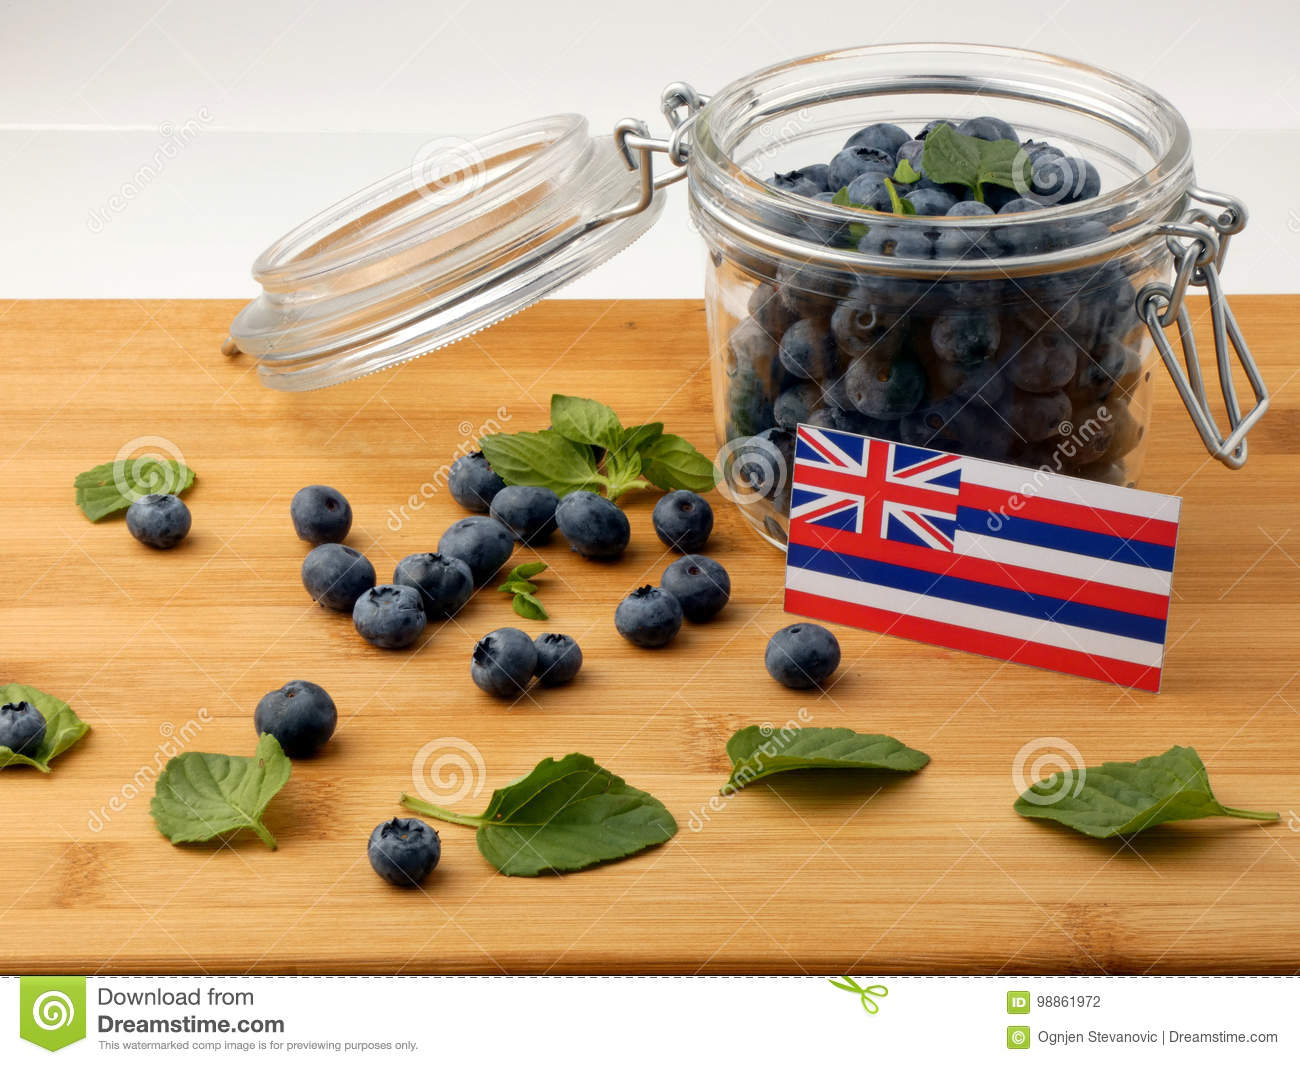 Hawaii flag on a wooden plank with blueberries on white